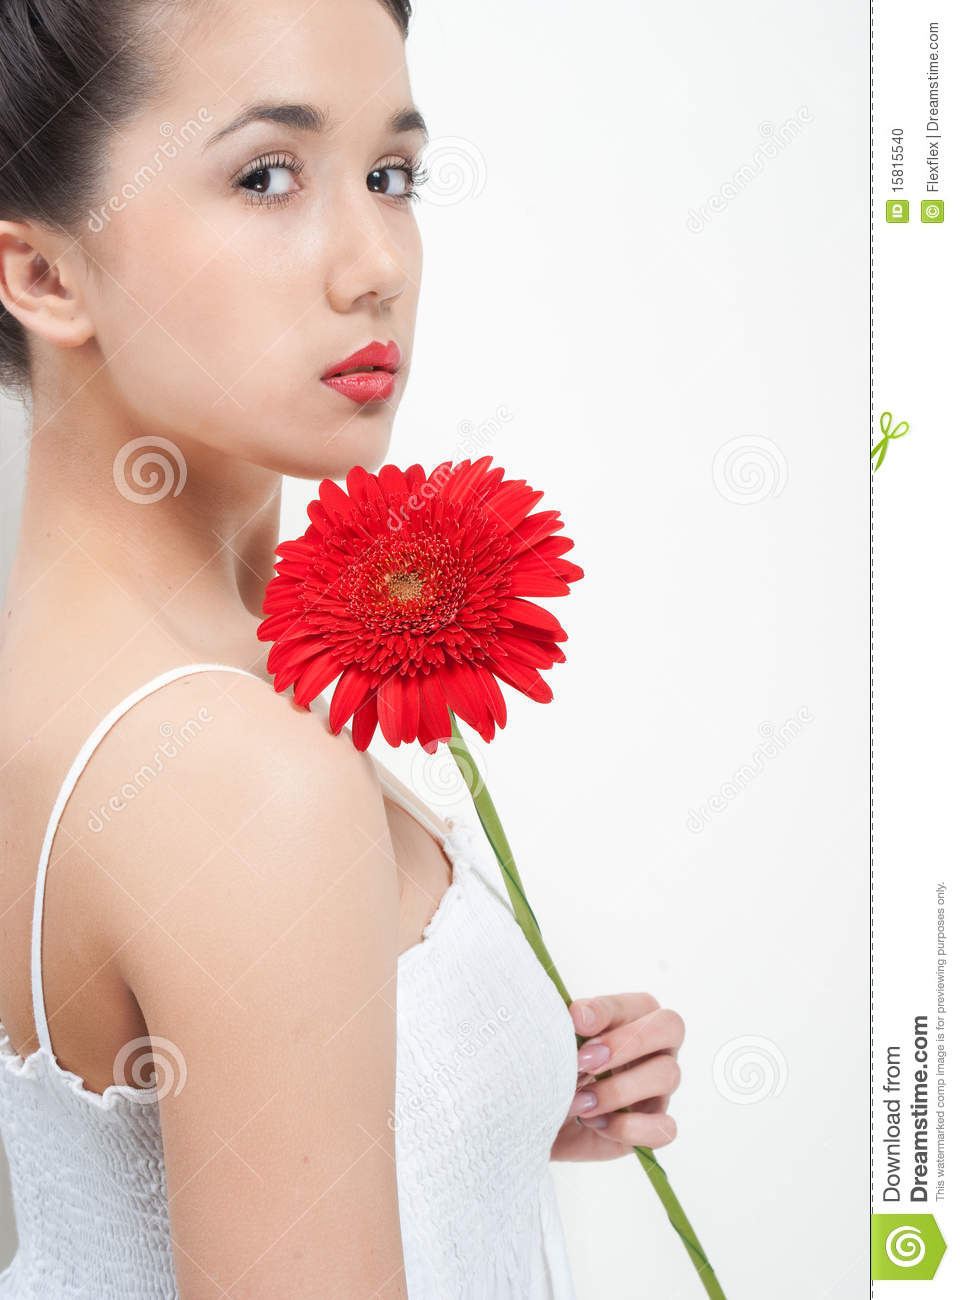 Young Woman In White Dress With Red Flower Stock Photo Image Of